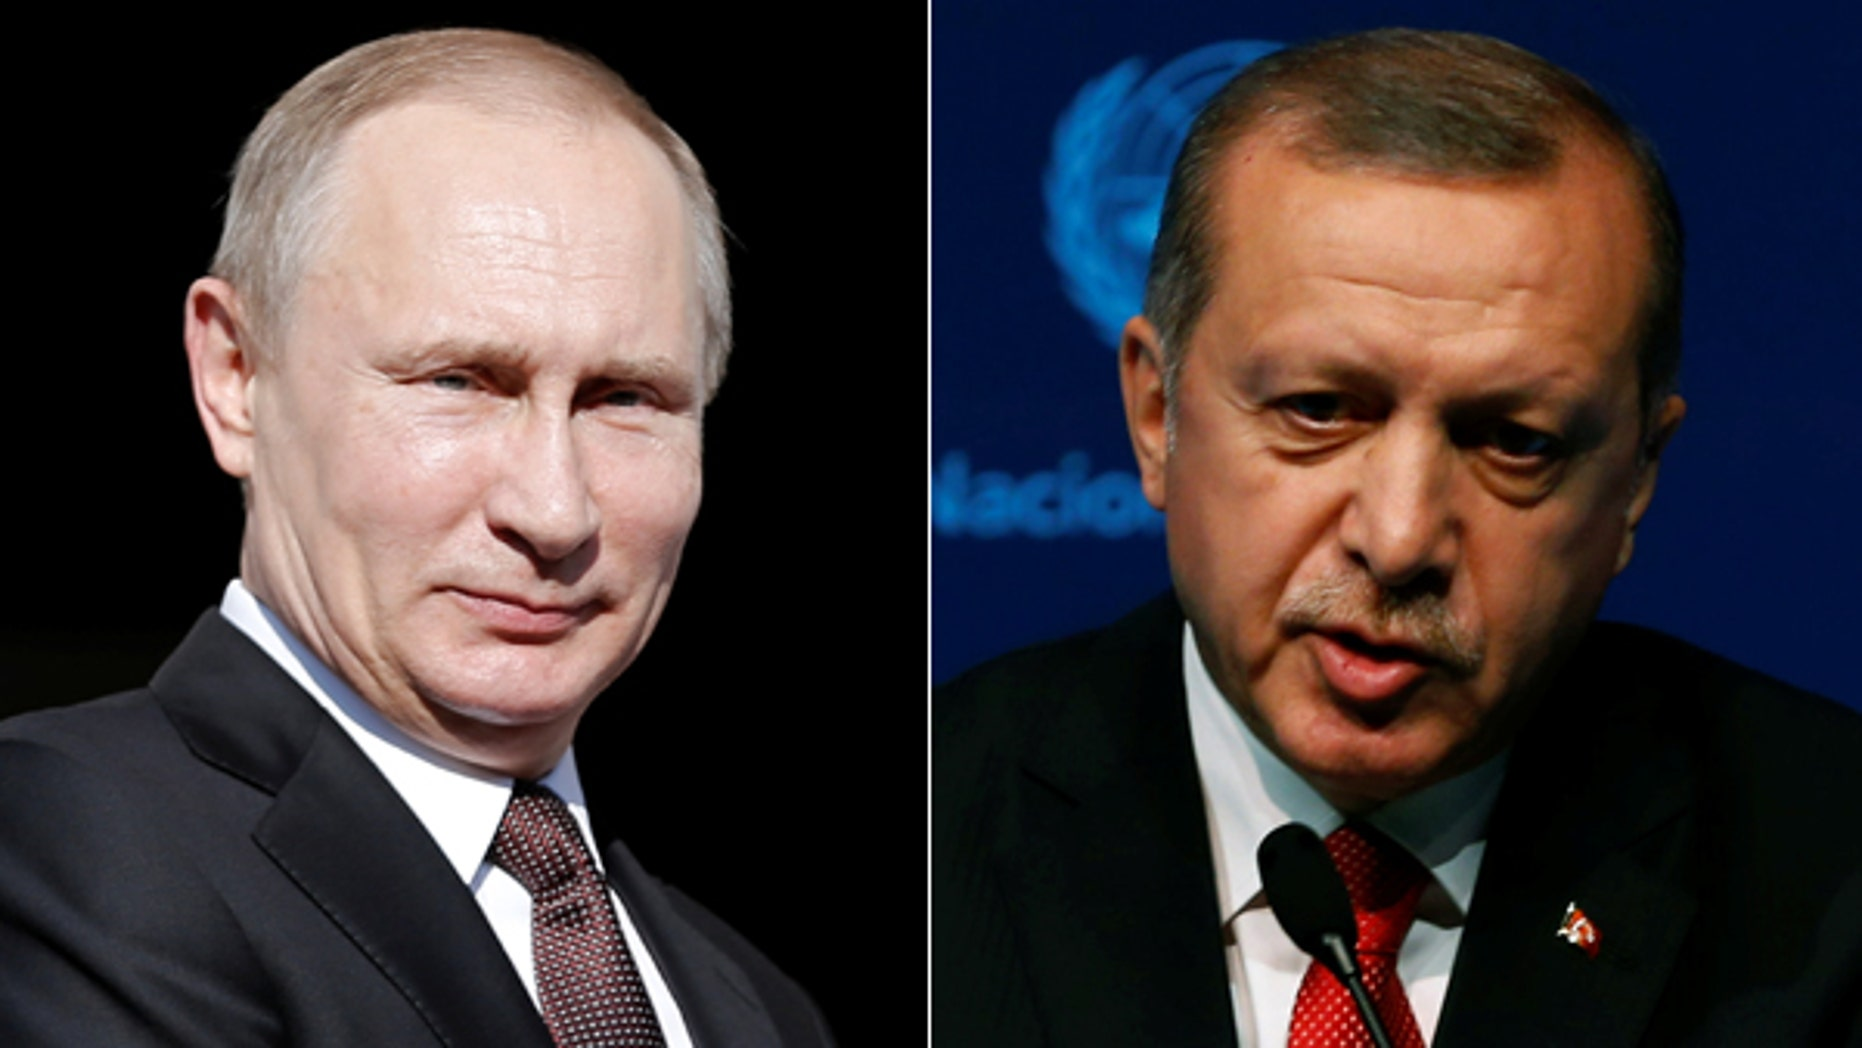 Russian President Vladimir Putin, left, and Turkish President Recep Tayyip Erdogan.